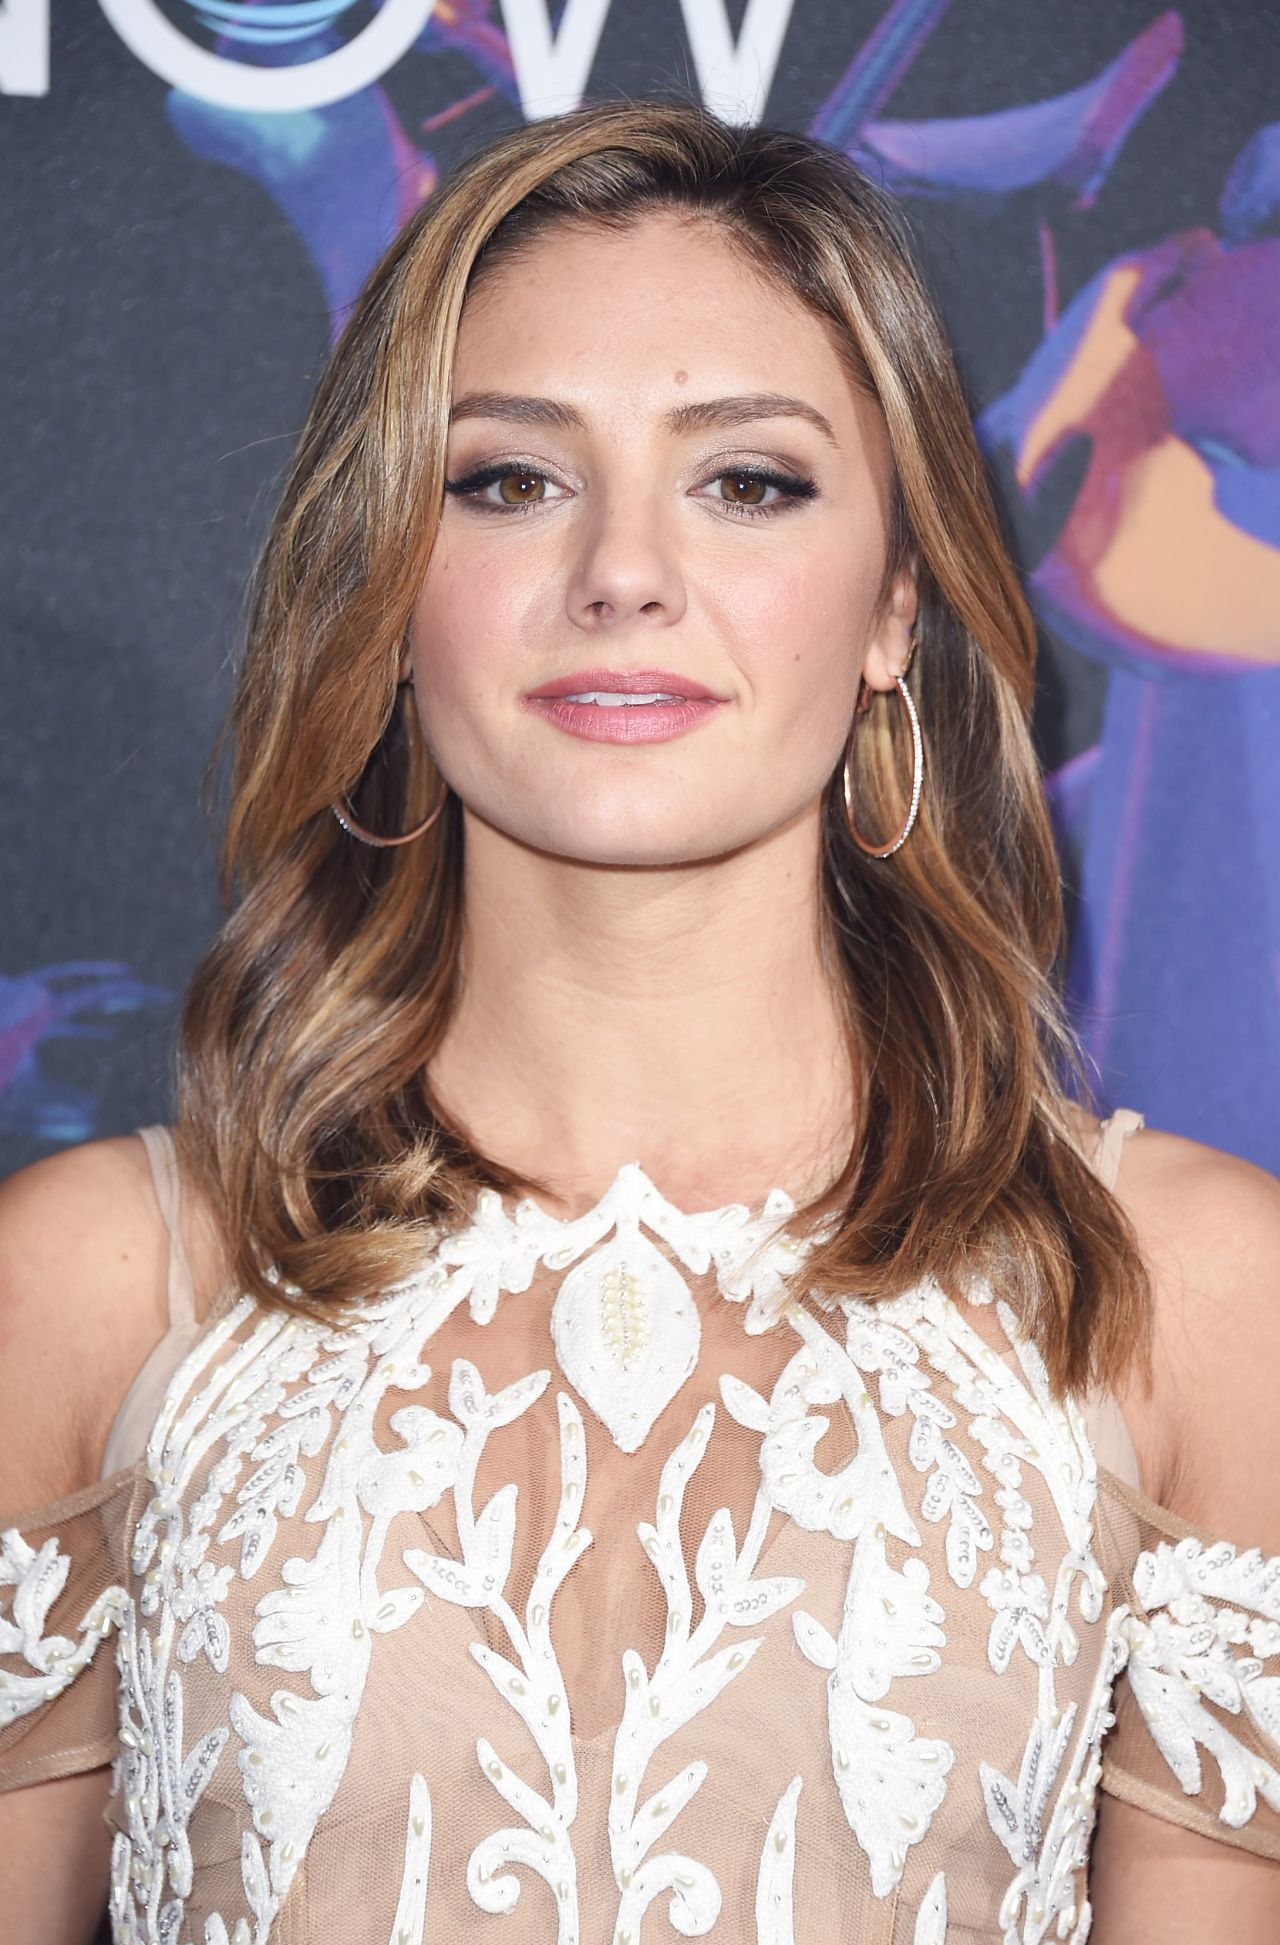 Christine Evangelista nude (27 pics) Hacked, YouTube, see through